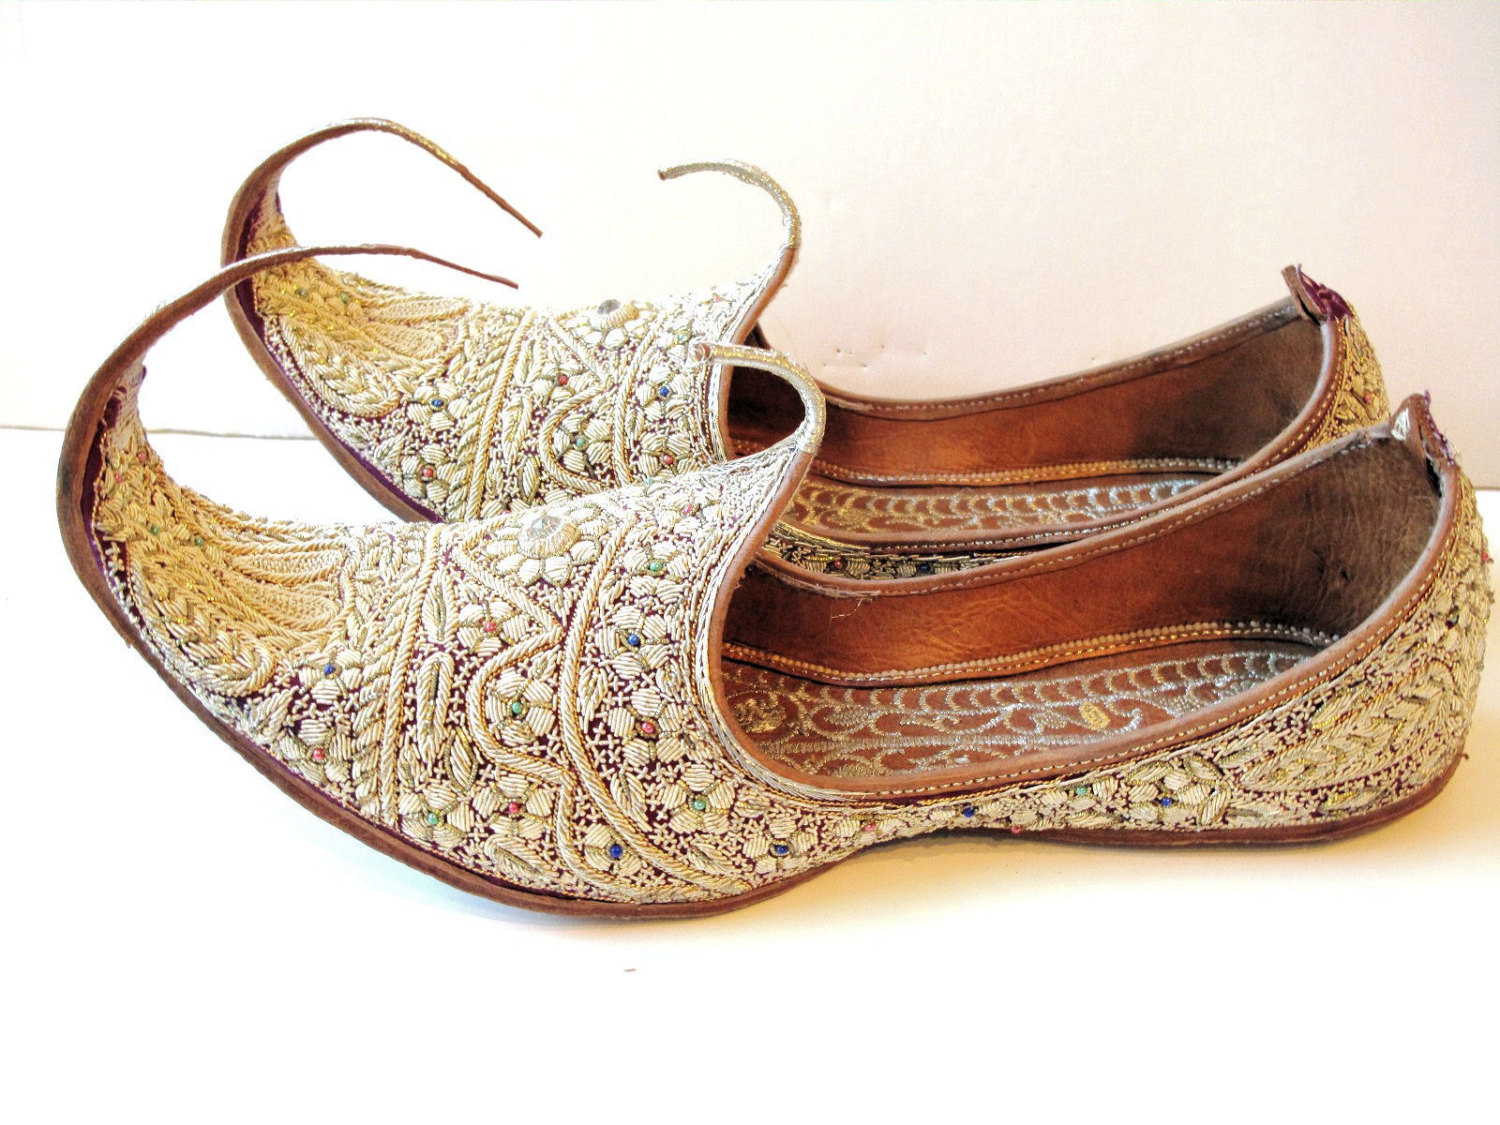 Handcrafted Luxury Mens Sherwani Style Wedding Khussa Shoe Maroon with Golden Trim Size US 7 to US 11.5